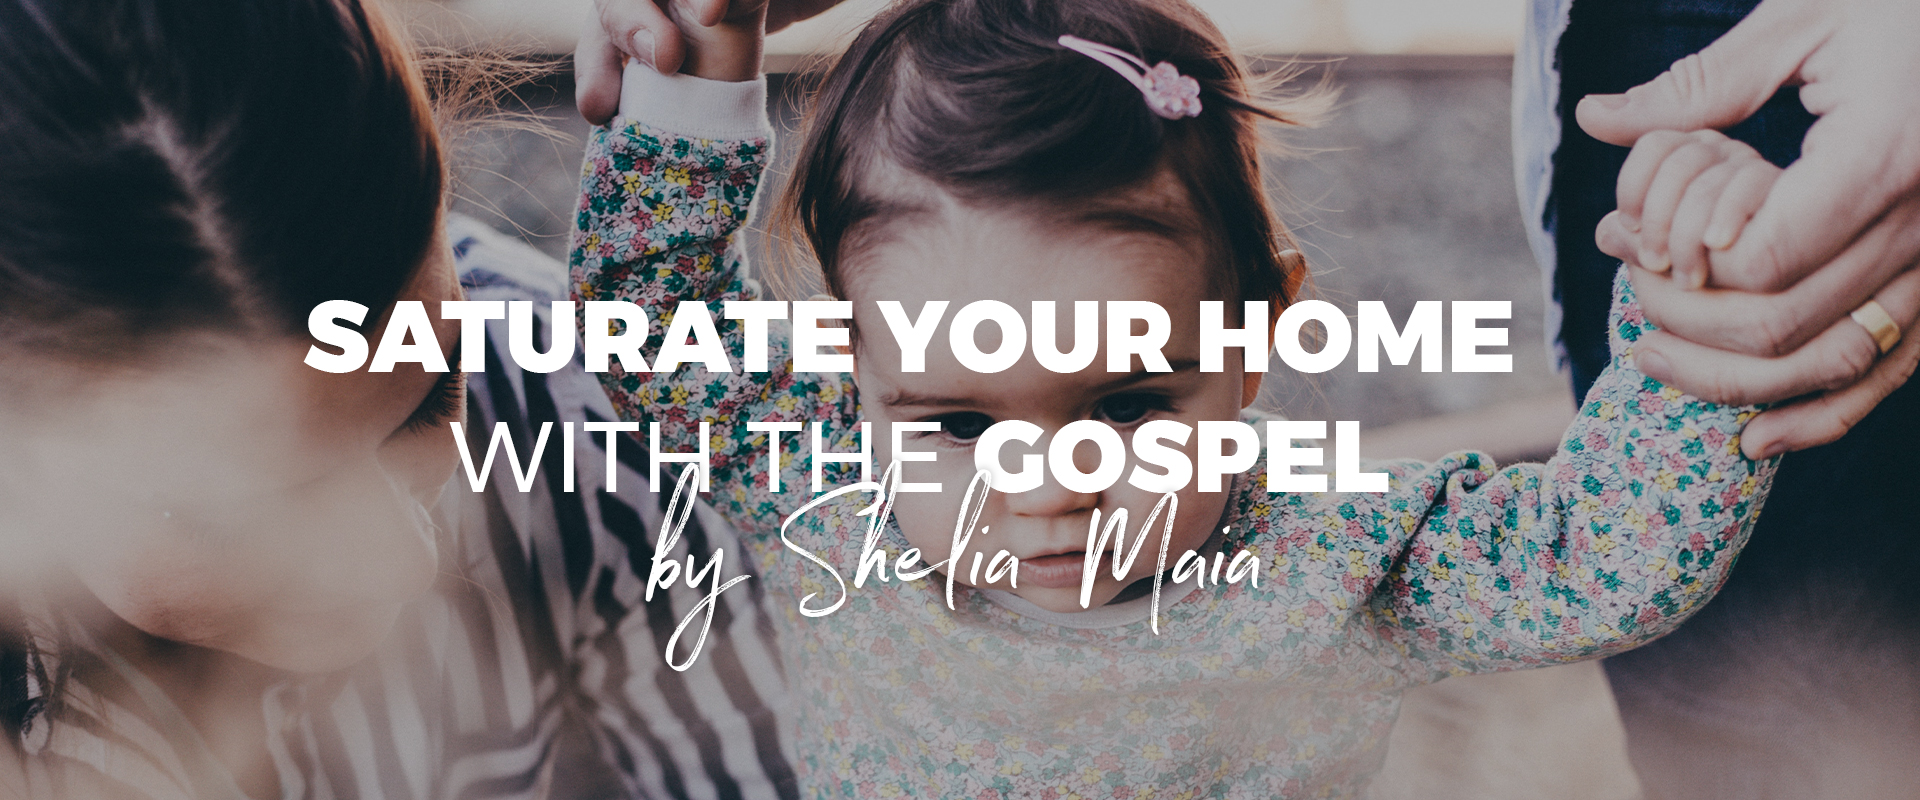 Saturate your Home with the Gospel